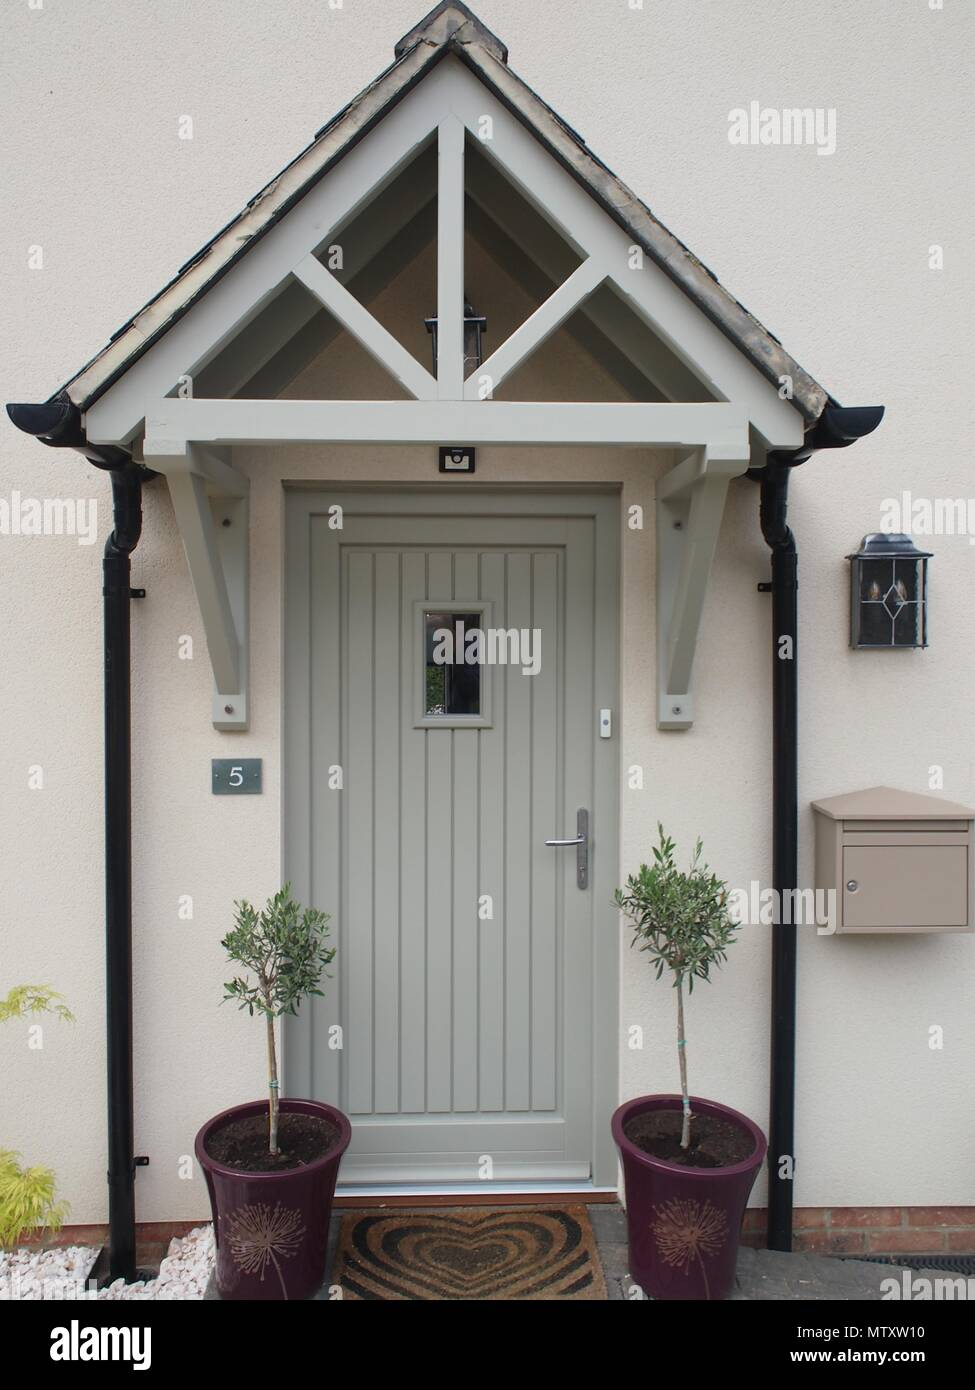 Front Door Storm Porch And Two Small Olive Trees With Letterbox And